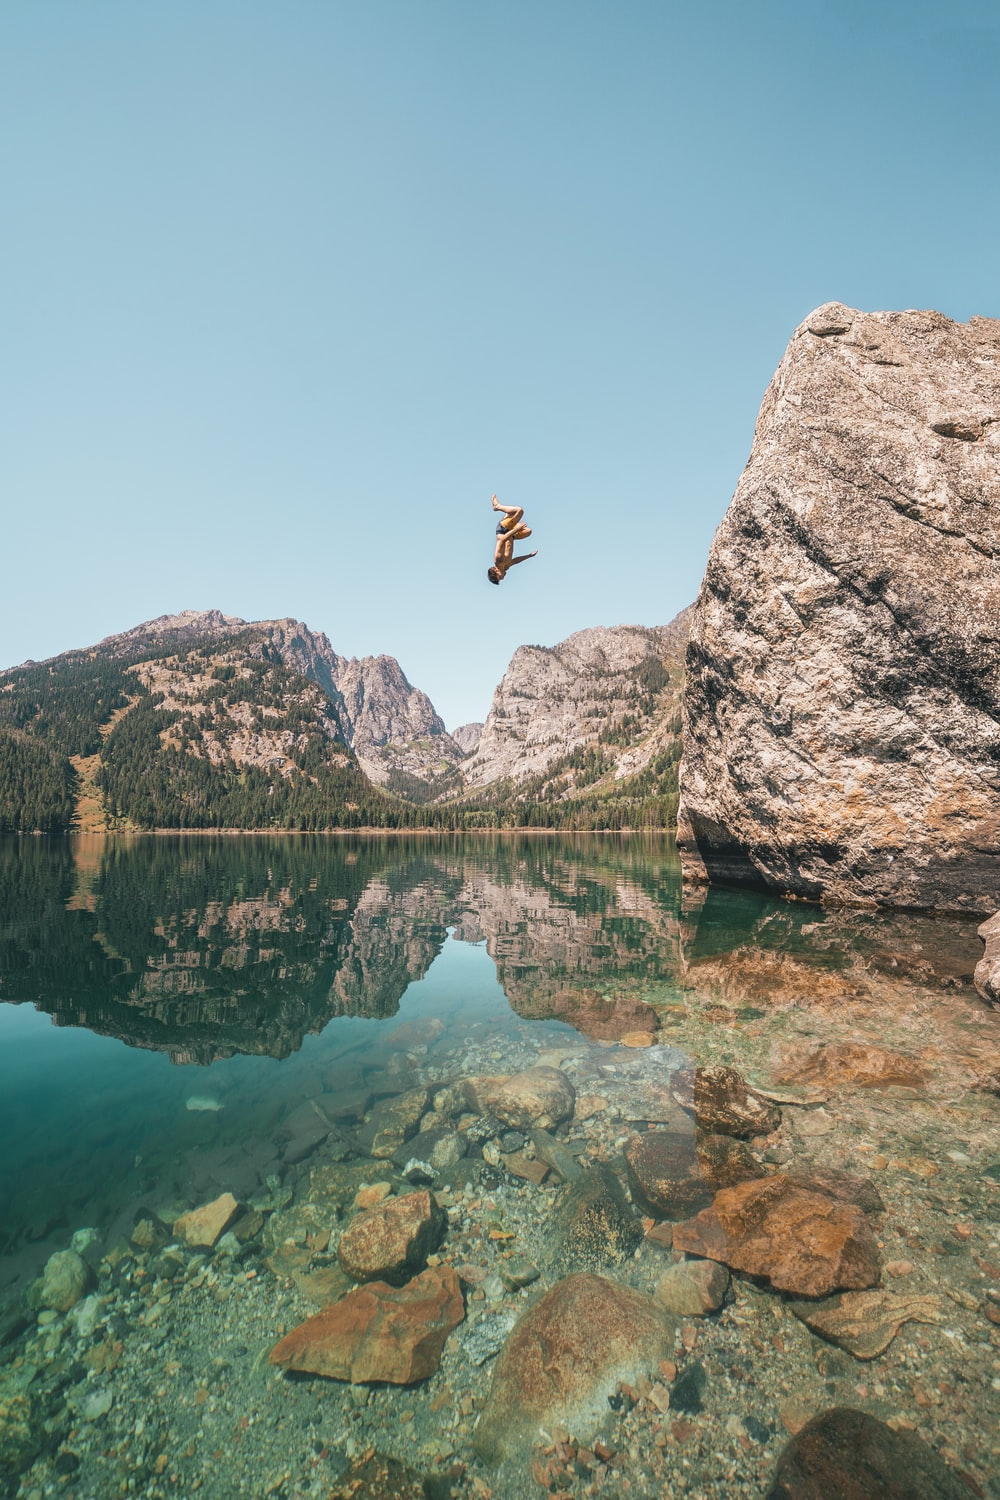 person jumping from rock formation to lake during daytime